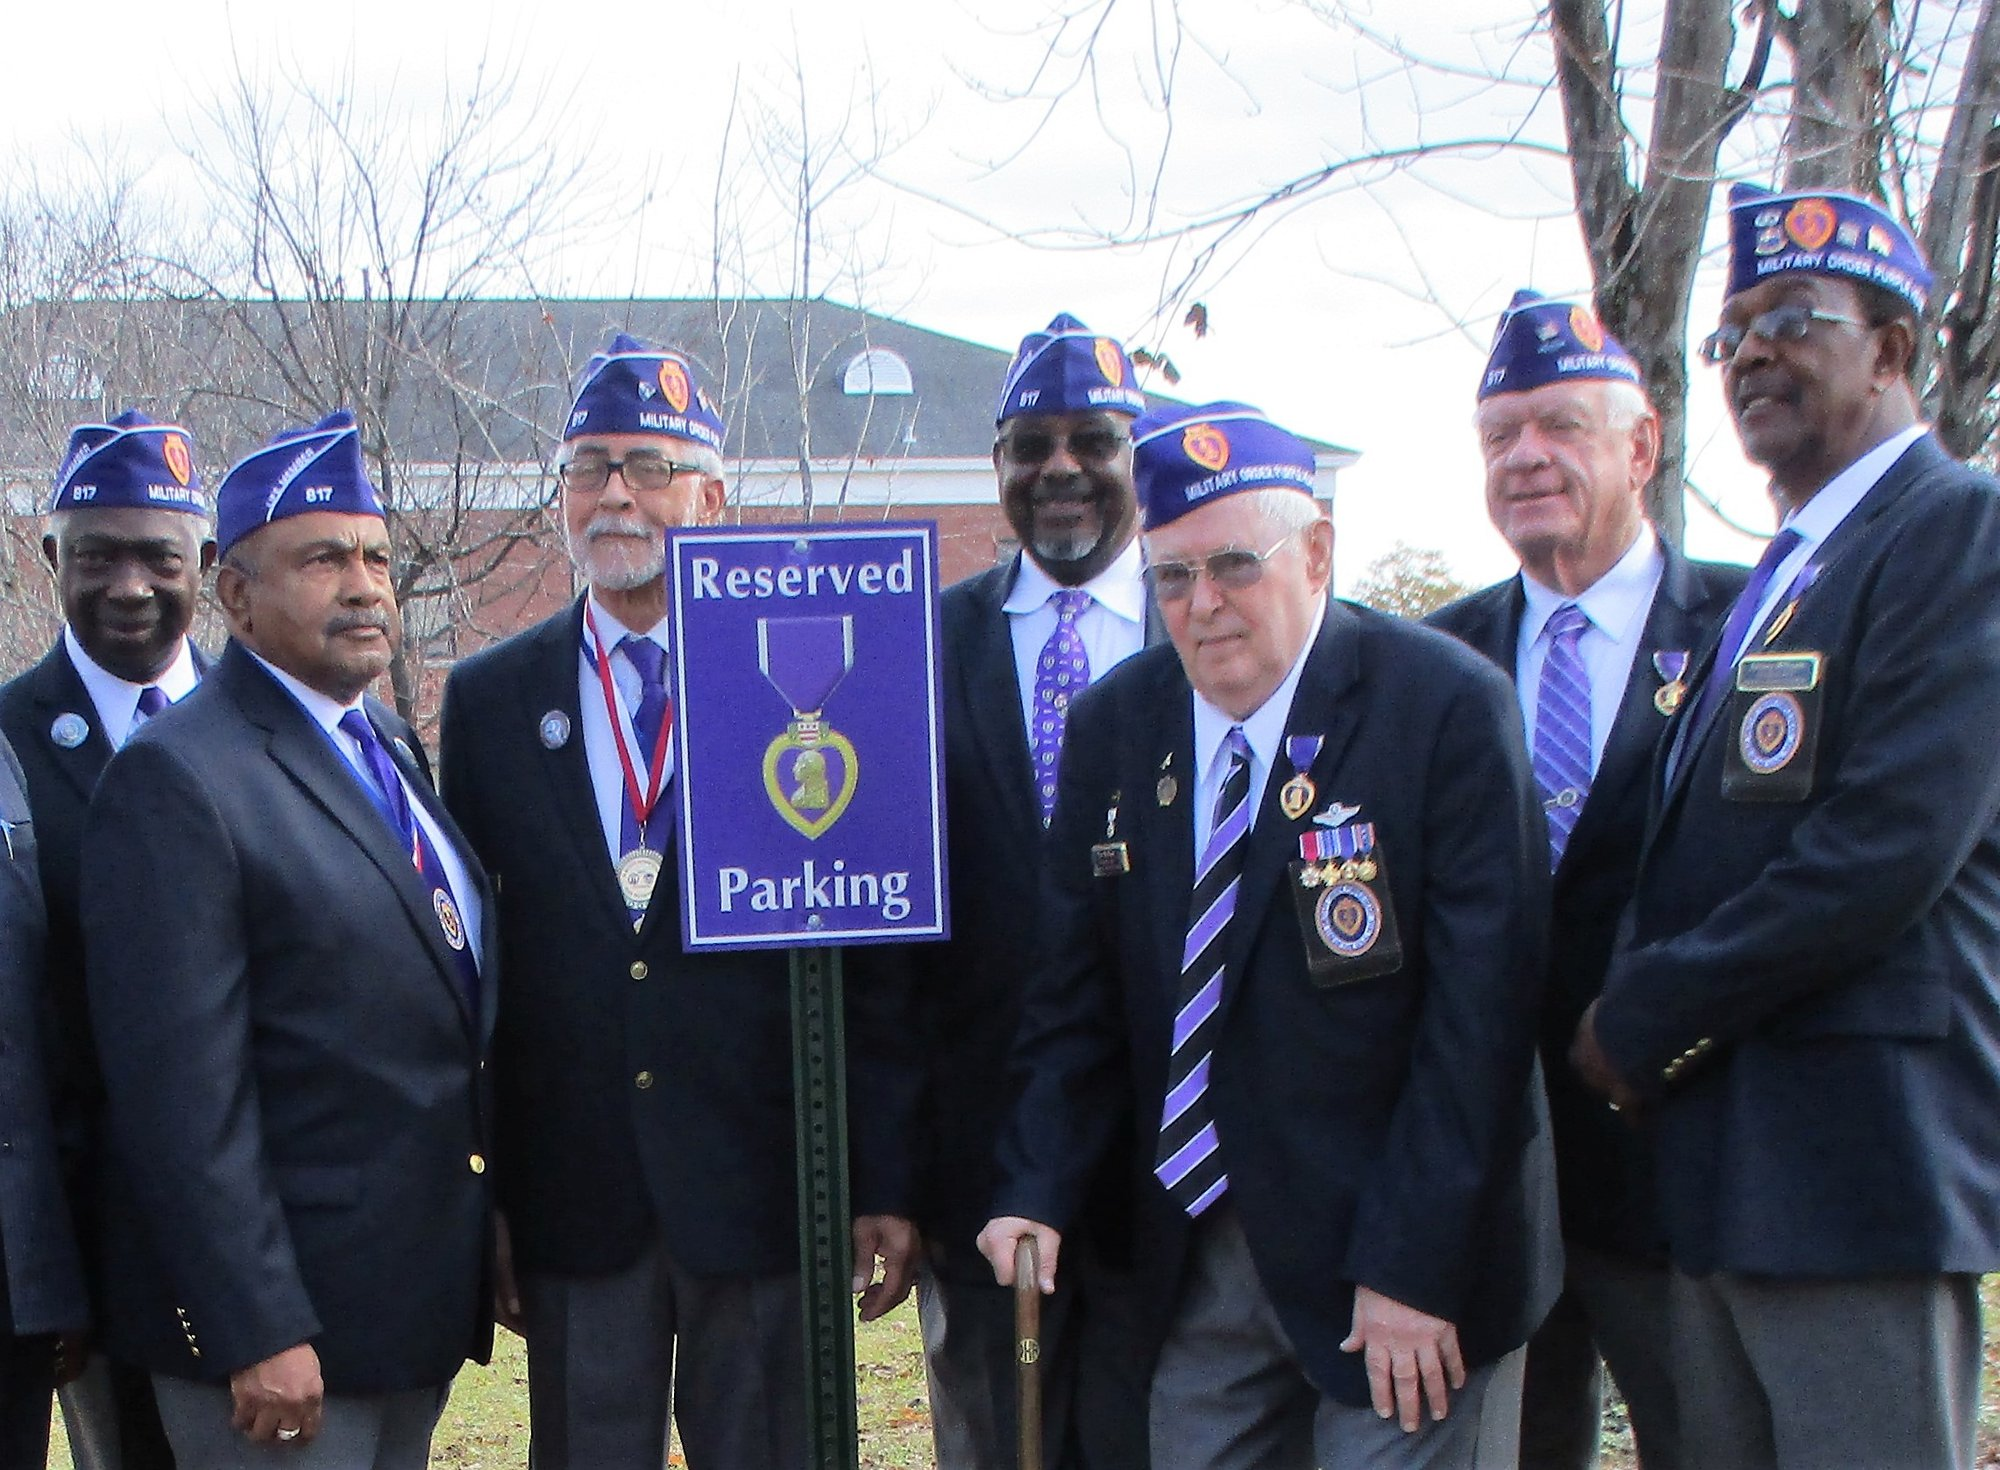 PHOTO PROVIDEDFrom left at the Purple Heart Reserved Parking Place at Morris College are Sumter Purple Heart Chapter 817 Patriot Jessie Burgess, Commander Harry Thompson, Patriot Ron Harvin, Adjutant Leroy Thompson and Patriots Don Kellum, Dave Nesbitt, and Johnny Williams.